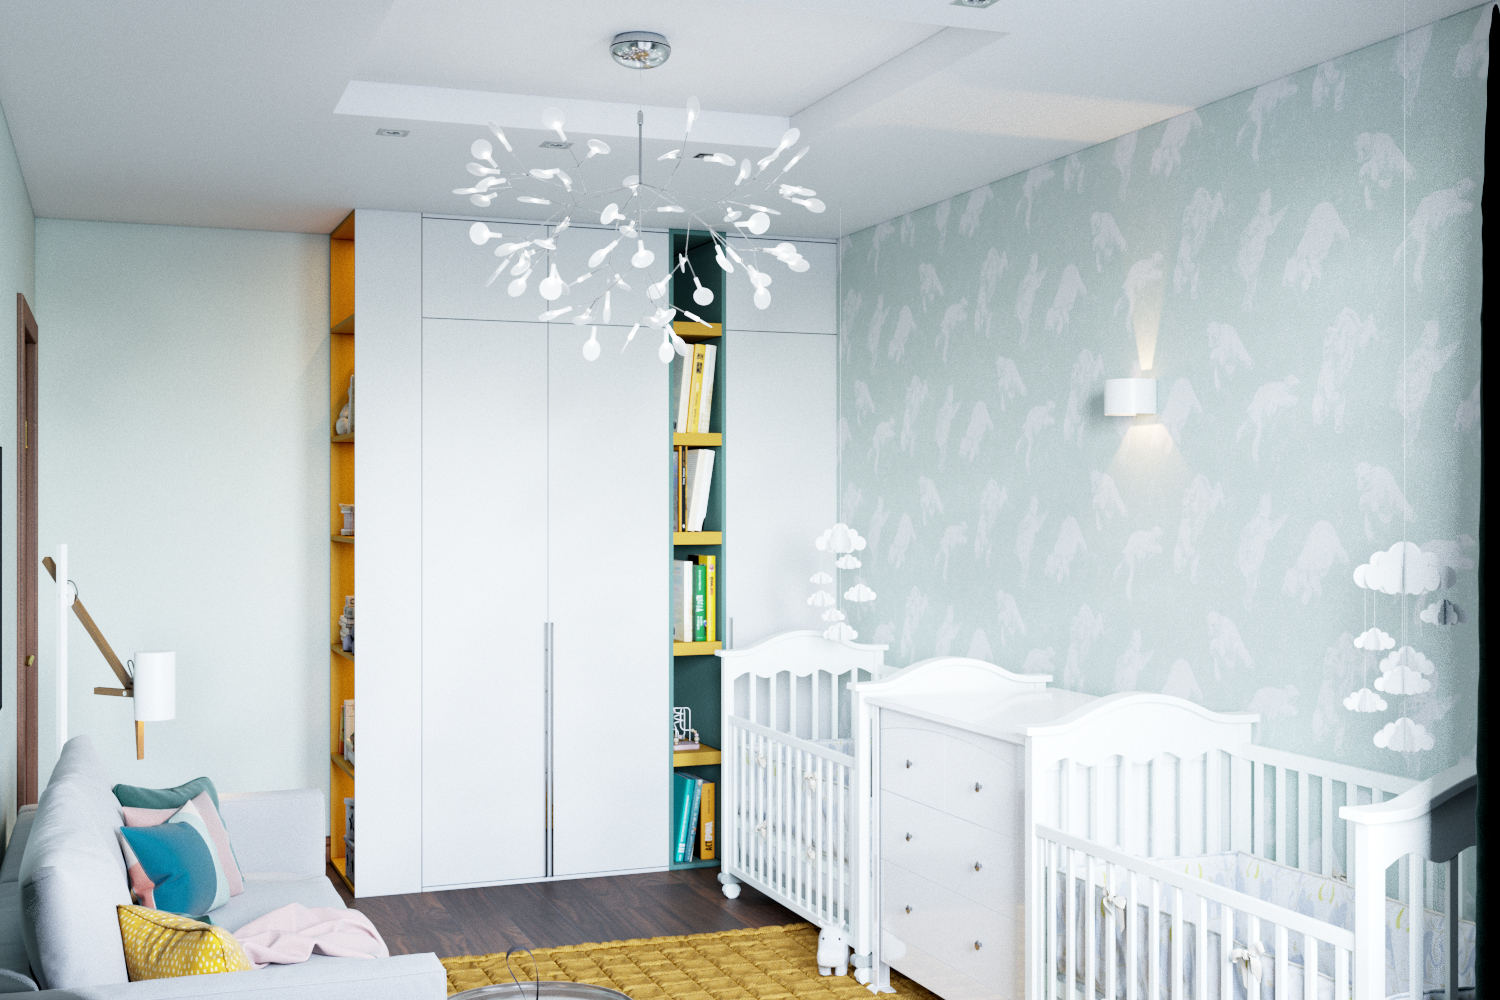 Bedroom&Children's room